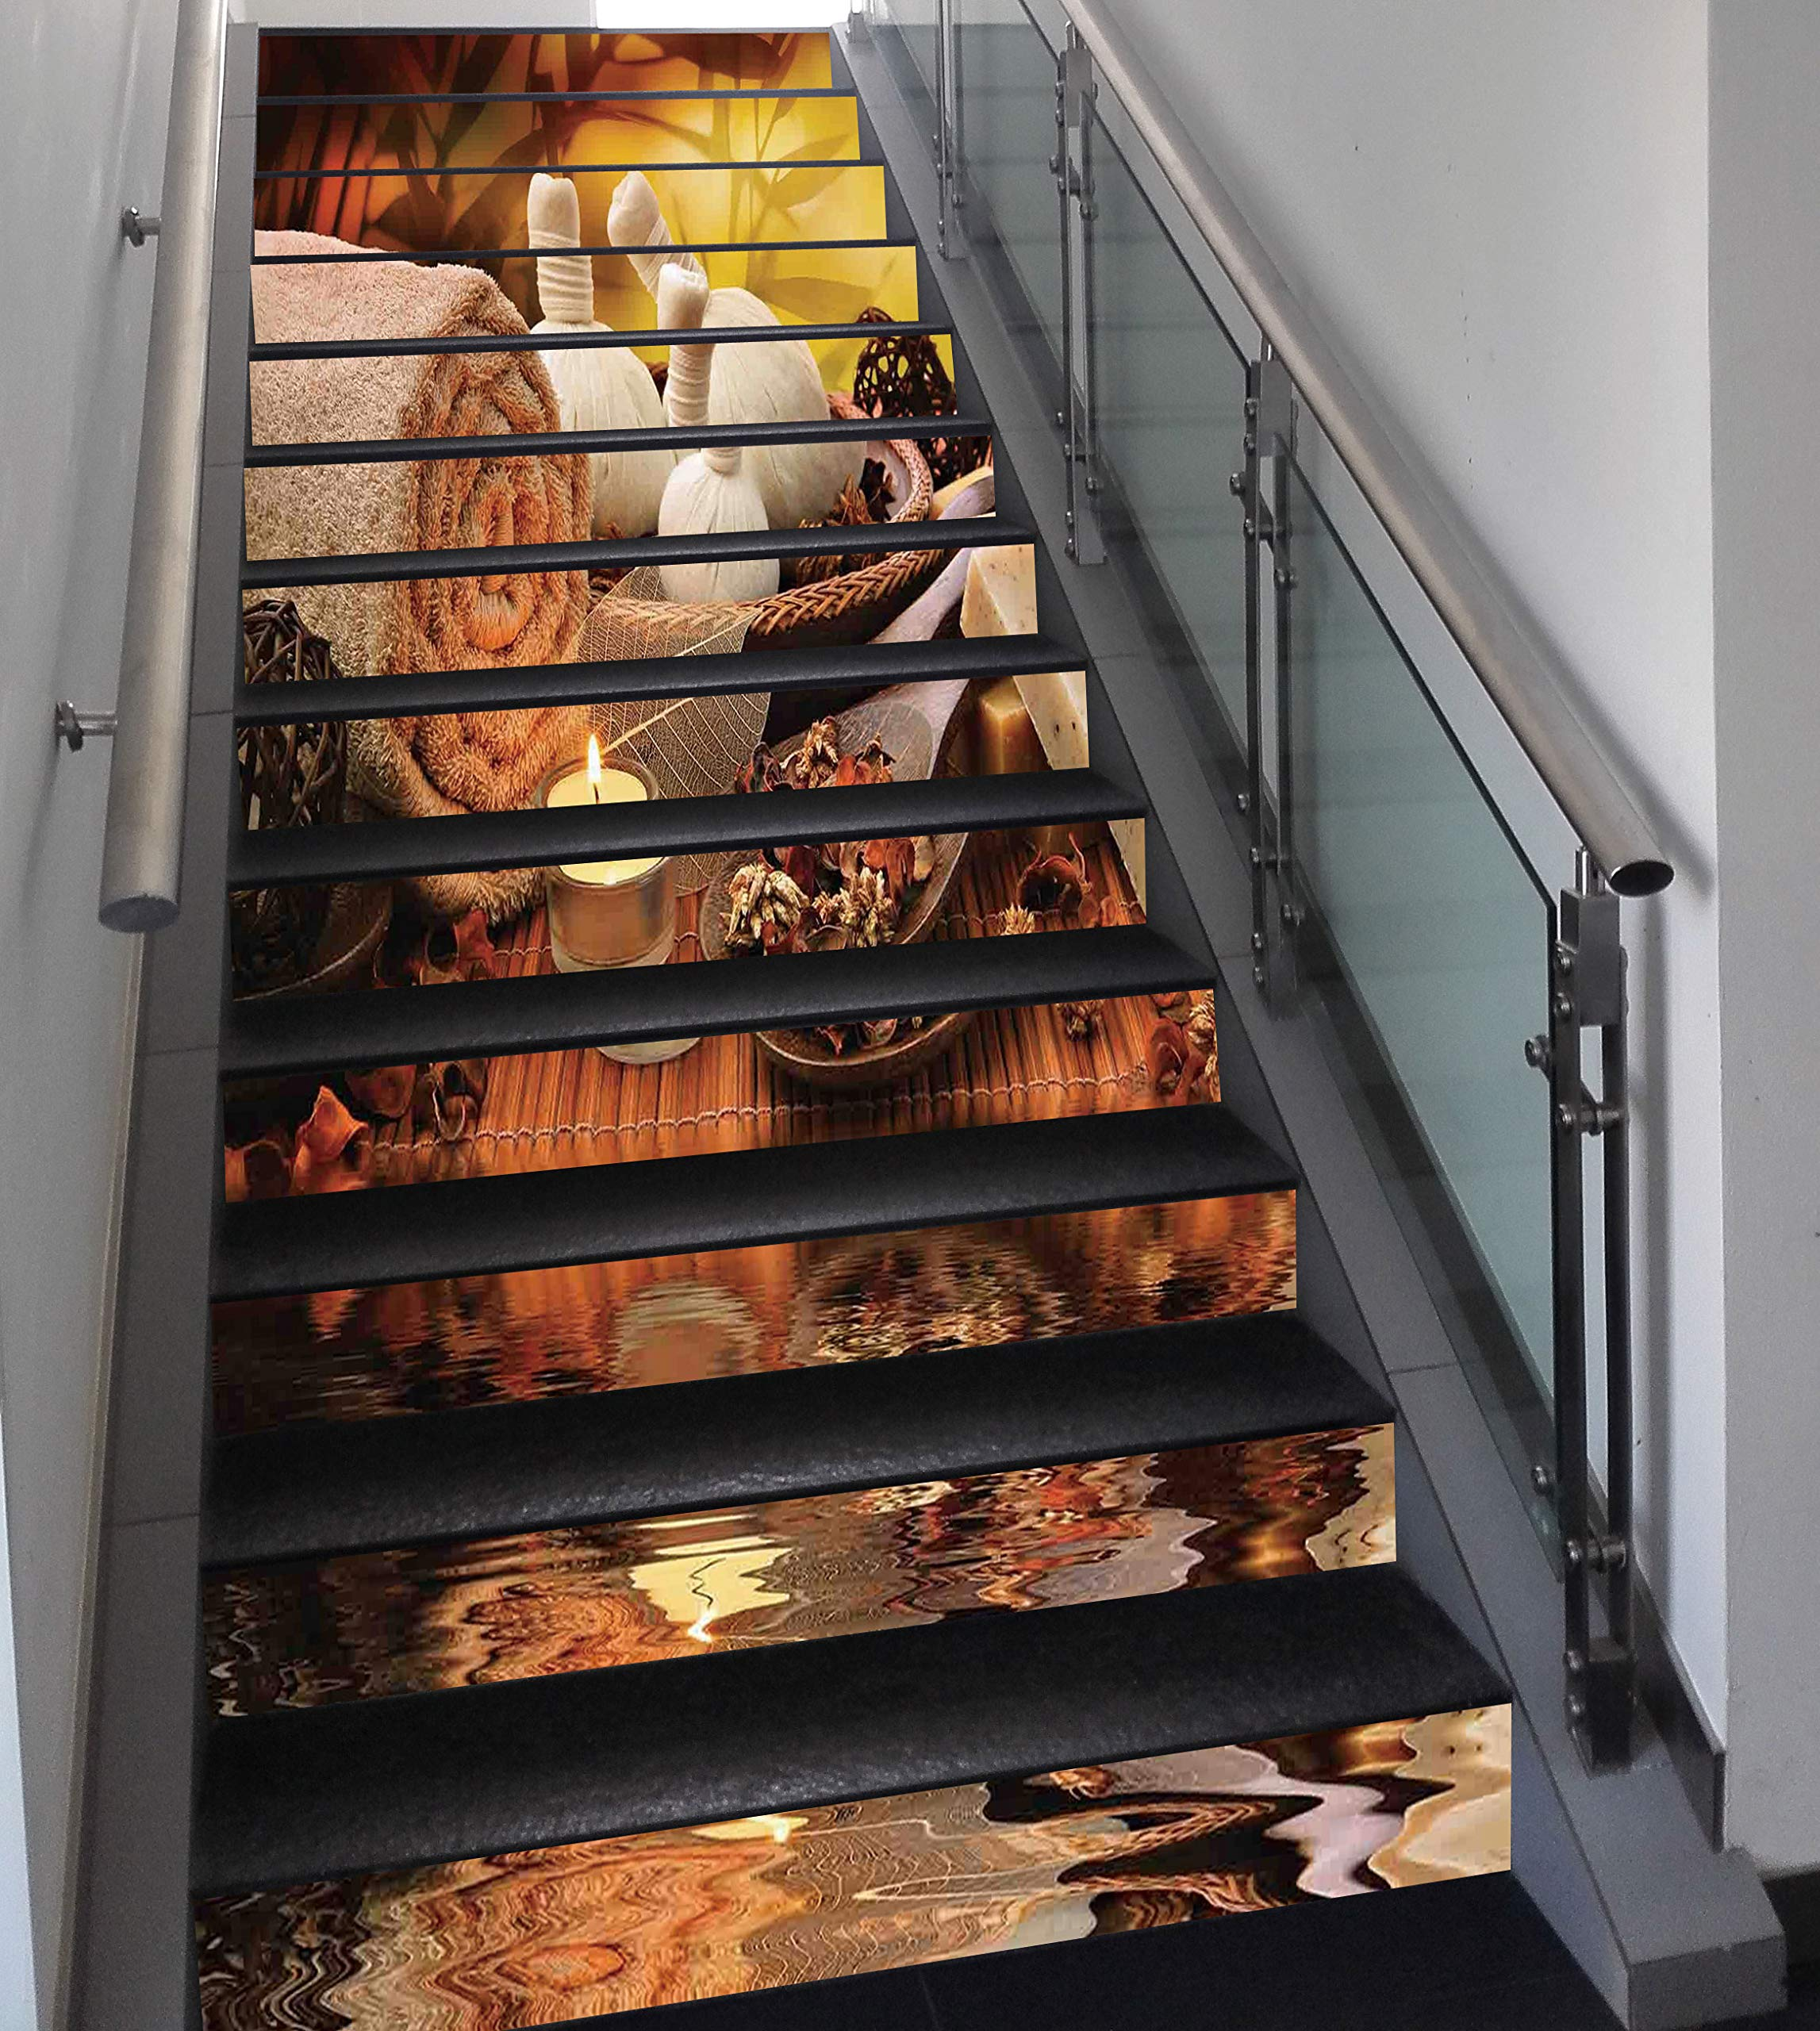 Stair Stickers Wall Stickers,13 PCS Self-Adhesive,Spa Decor,Outdoor Spa Massage Setting at Sunset with Candlelight Reflections Culture,Stair Riser Decal for Living Room, Hall, Kids Room Decor